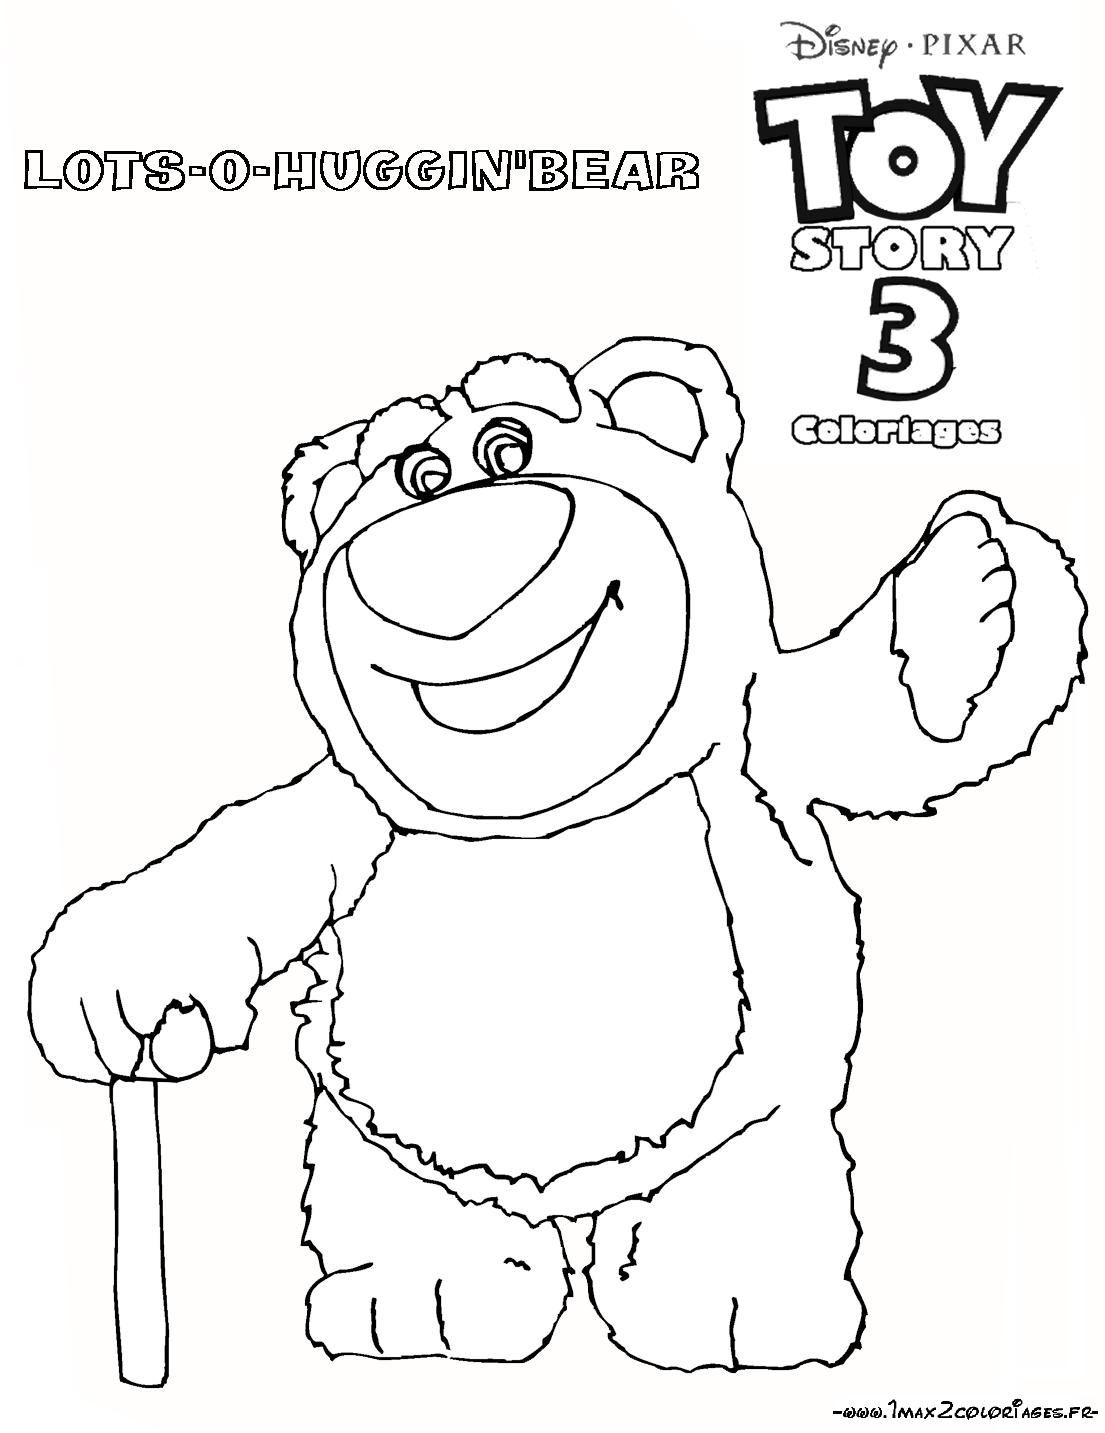 Coloriage a imprimer toy story 3 huggin l ours gratuit et colorier - Coloriage toy story 3 ...